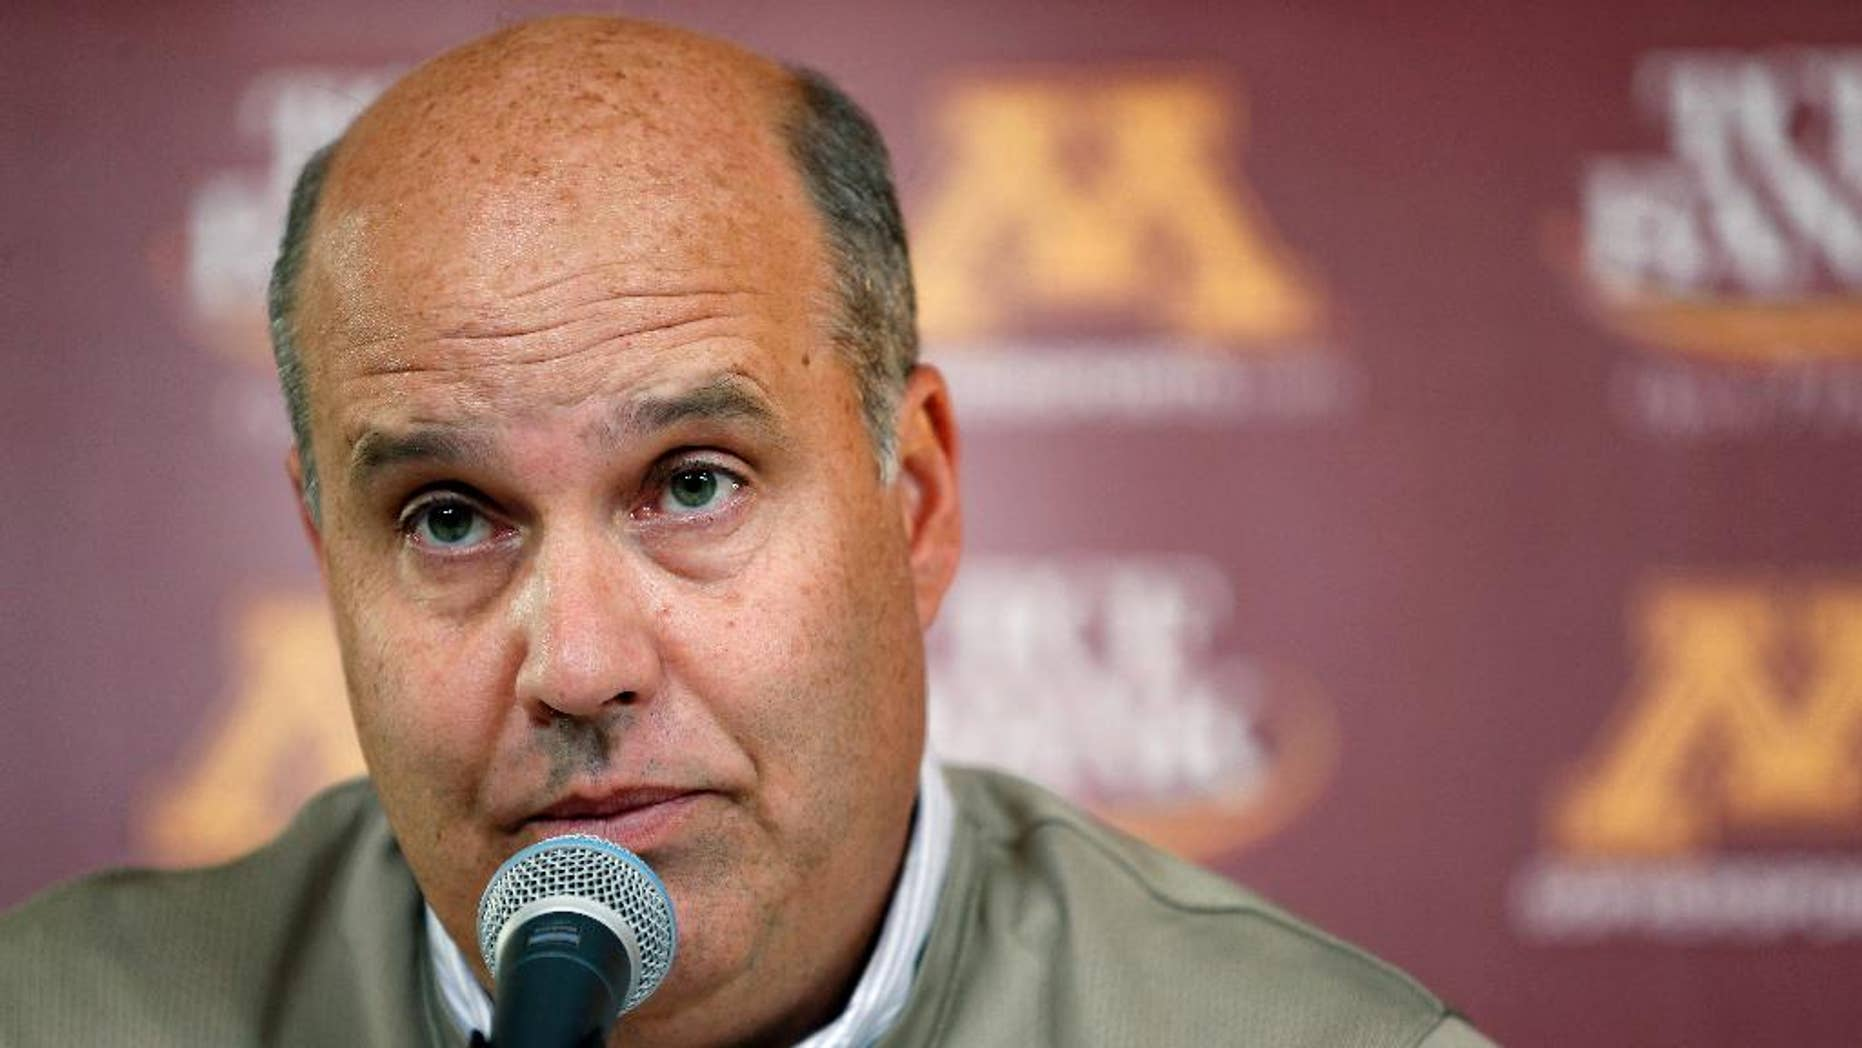 FILE - In this Oct. 10, 2013, file photo, Minnesota athletic director Norwood Teague speaks at a news conference in Minneapolis. Two examinations of the University of Minnesota's athletics department will become public Tuesday, Dec. 8, offering new information about a sports program dealing with upheaval from Teague's resignation after he was accused of sexual harassment. (Carlos Gonzalez/Star Tribune via AP, File)